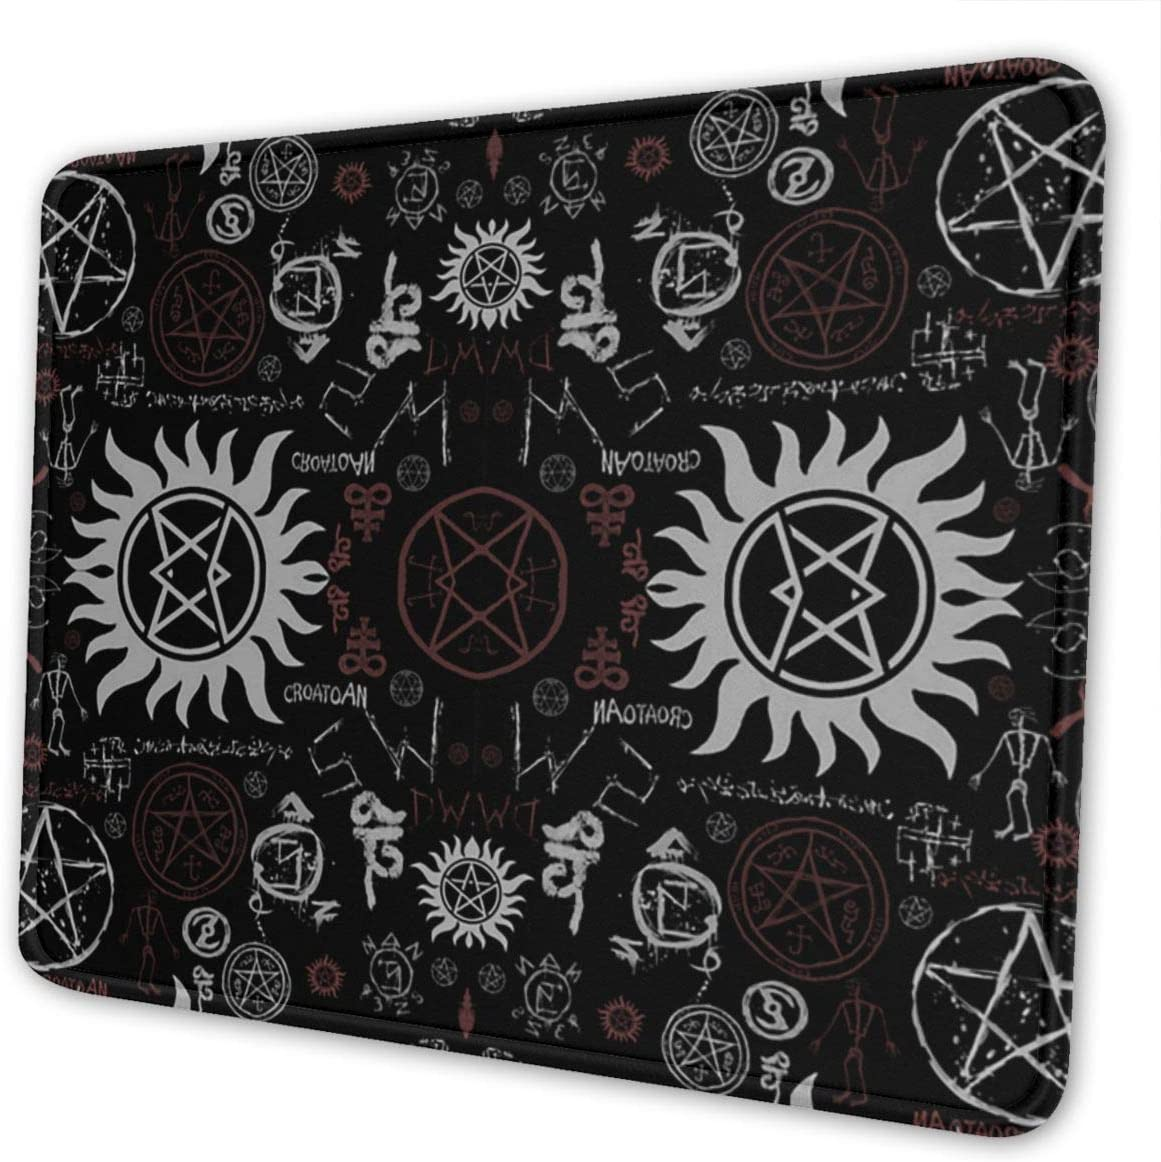 Supernatural Symbols Black Gaming Mouse Pad with Stitched Edges, Customized Rectangle Mousepad Non-Slip Rubber Base for Computer Laptop Office Accessories 9.5 x 7.9 Inch